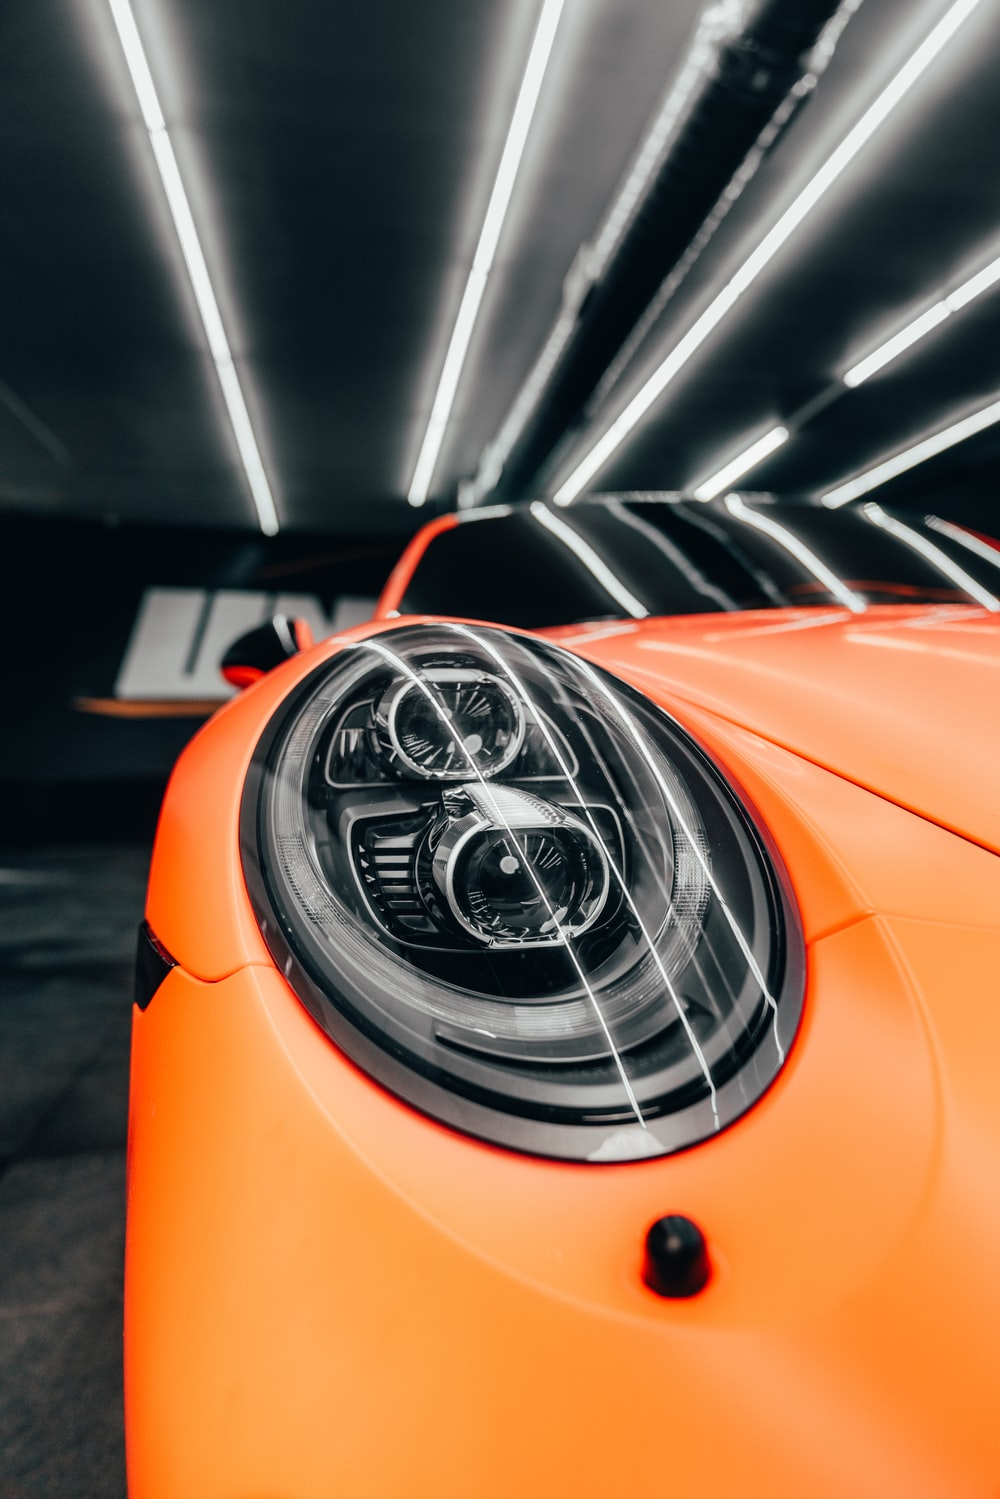 orange and black car in close up photography